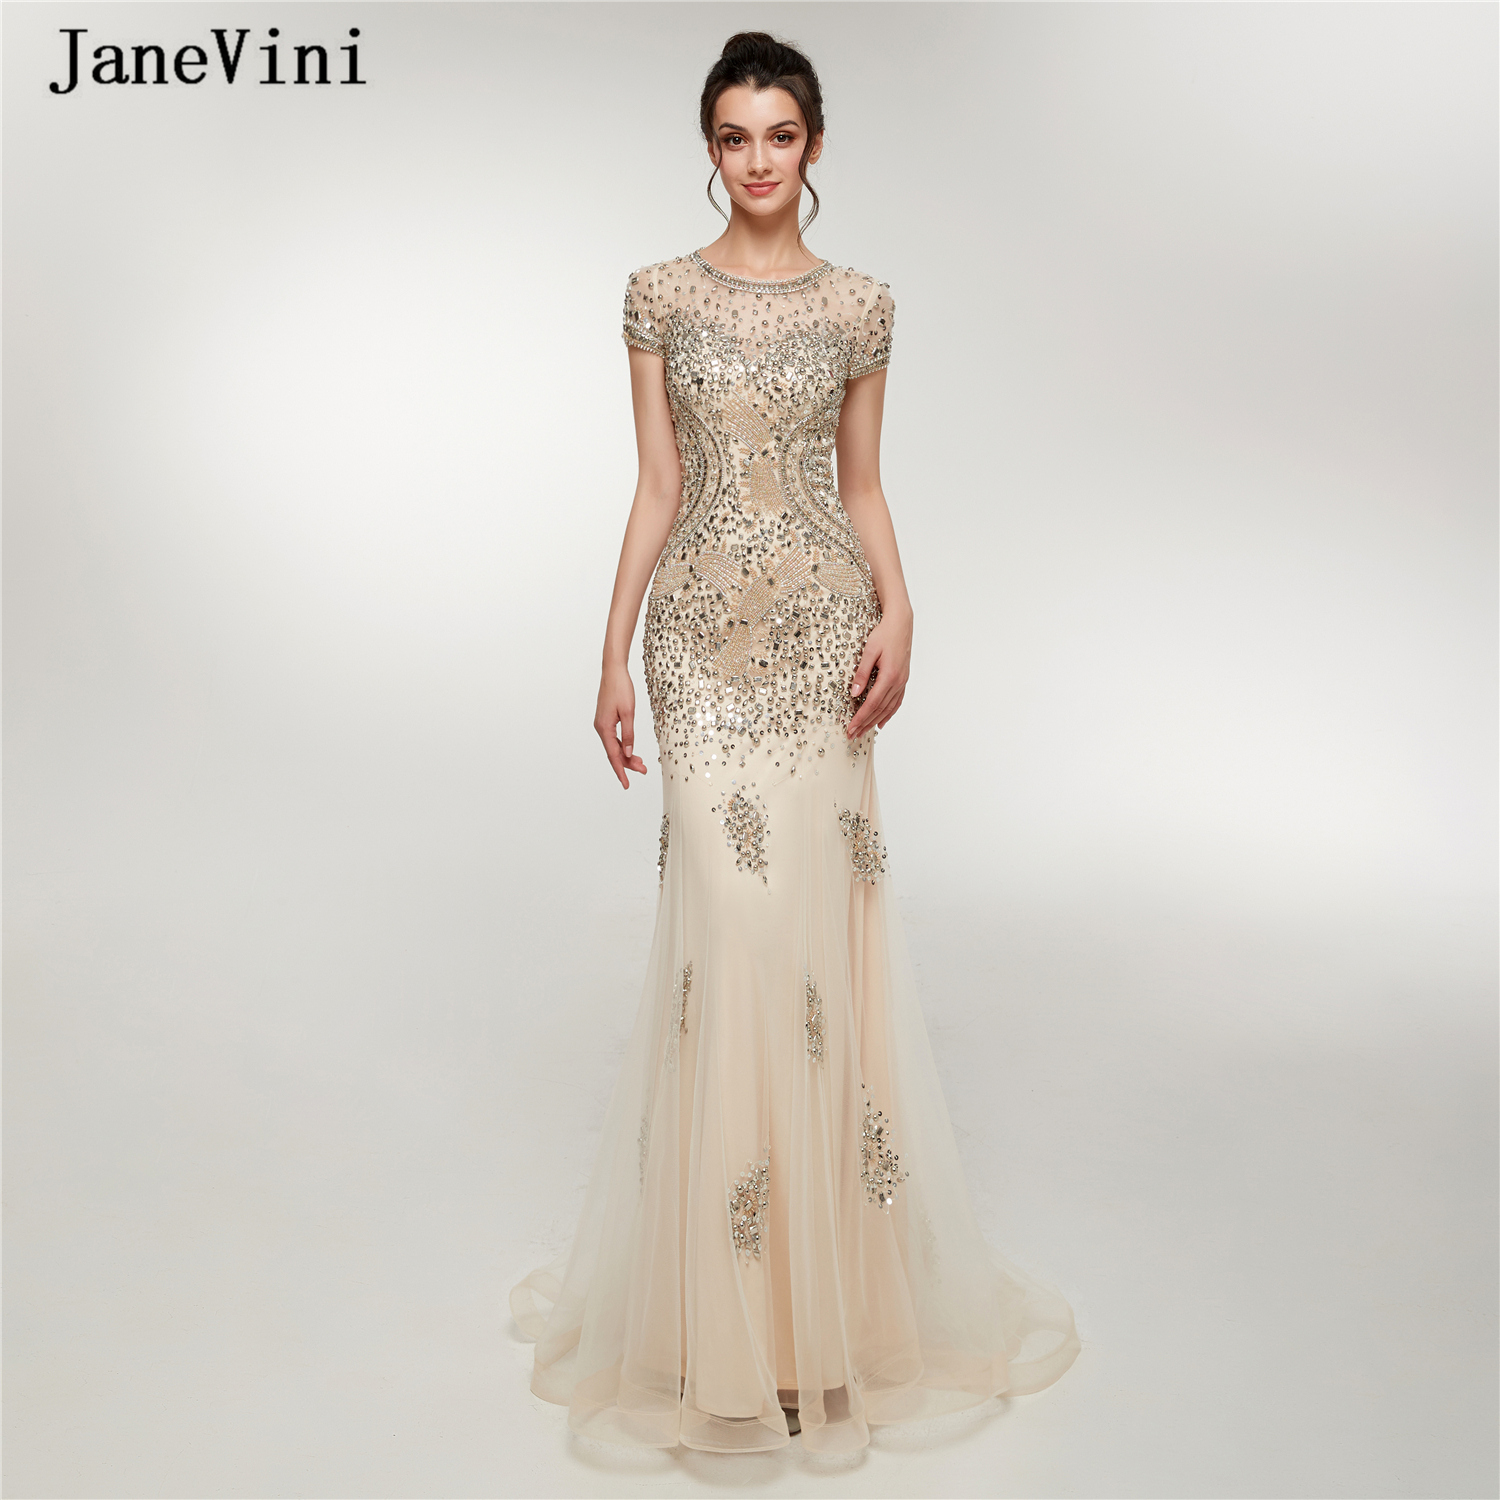 JaneVini Luxury Beading Dubai Tulle Long   Prom     Dresses   O-Neck Sexy Mermaid Short Sleeves Illusion Back Women Formal Party Gowns